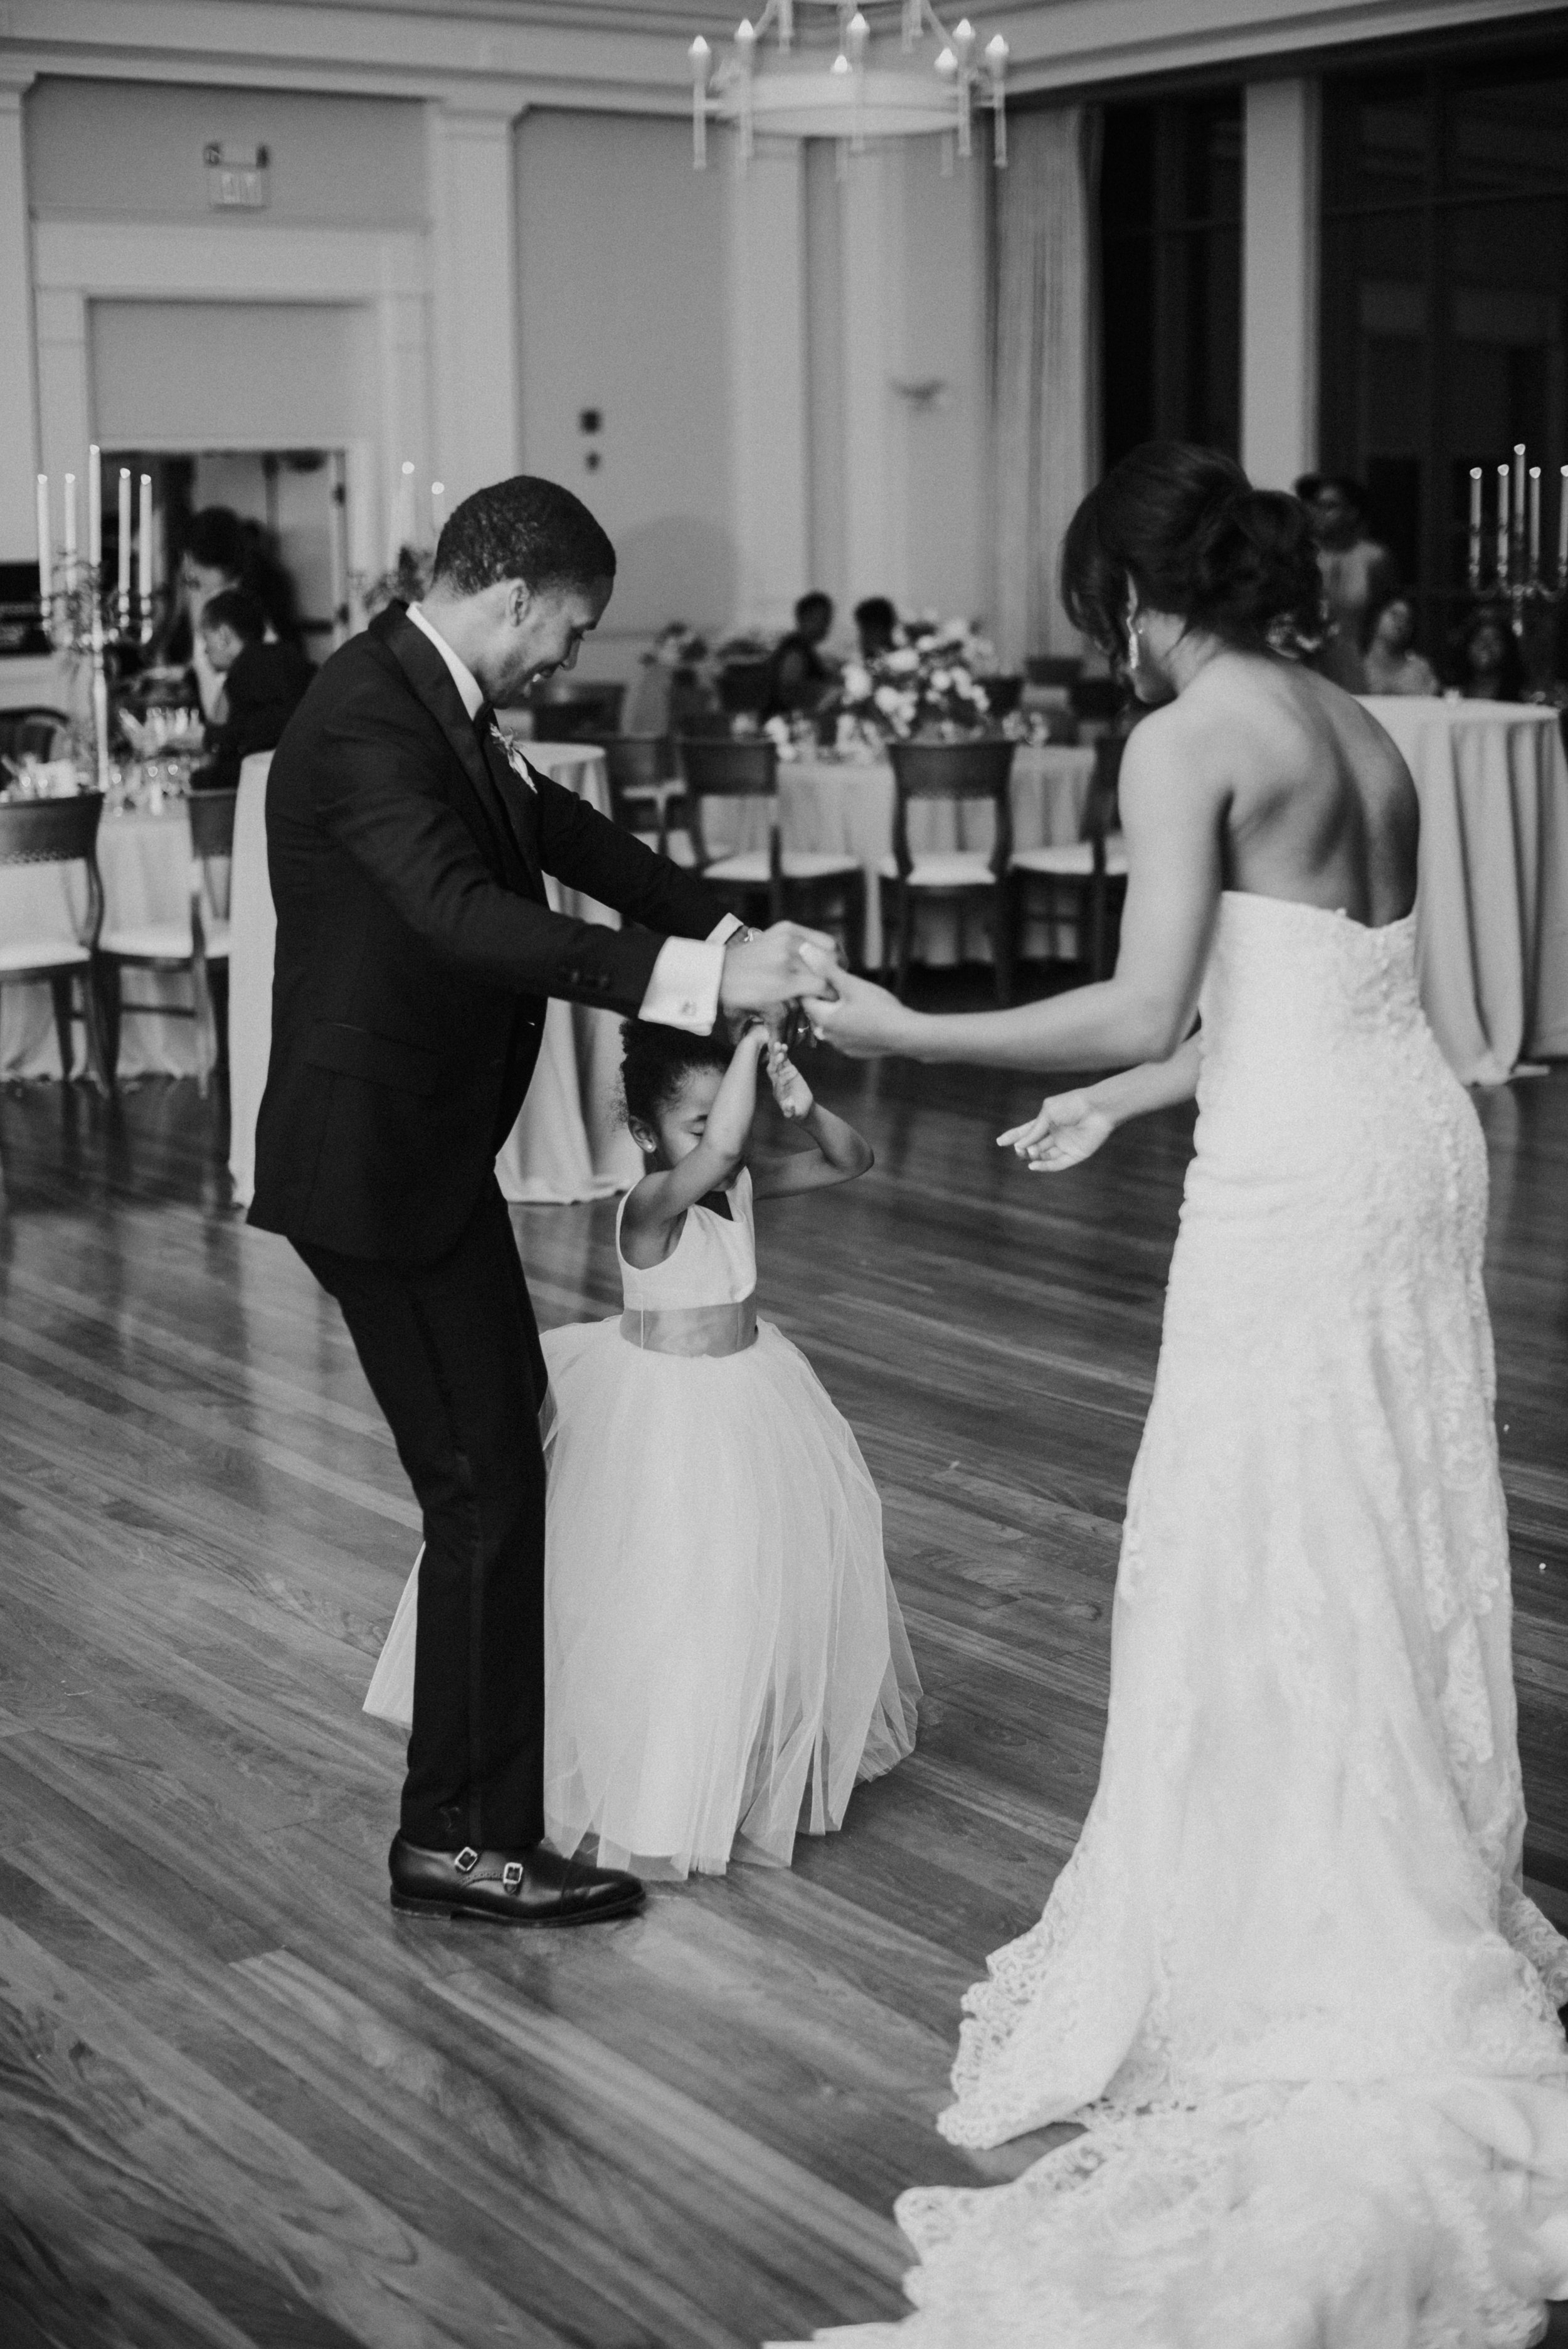 Newlyweds dance with flower girl as a family